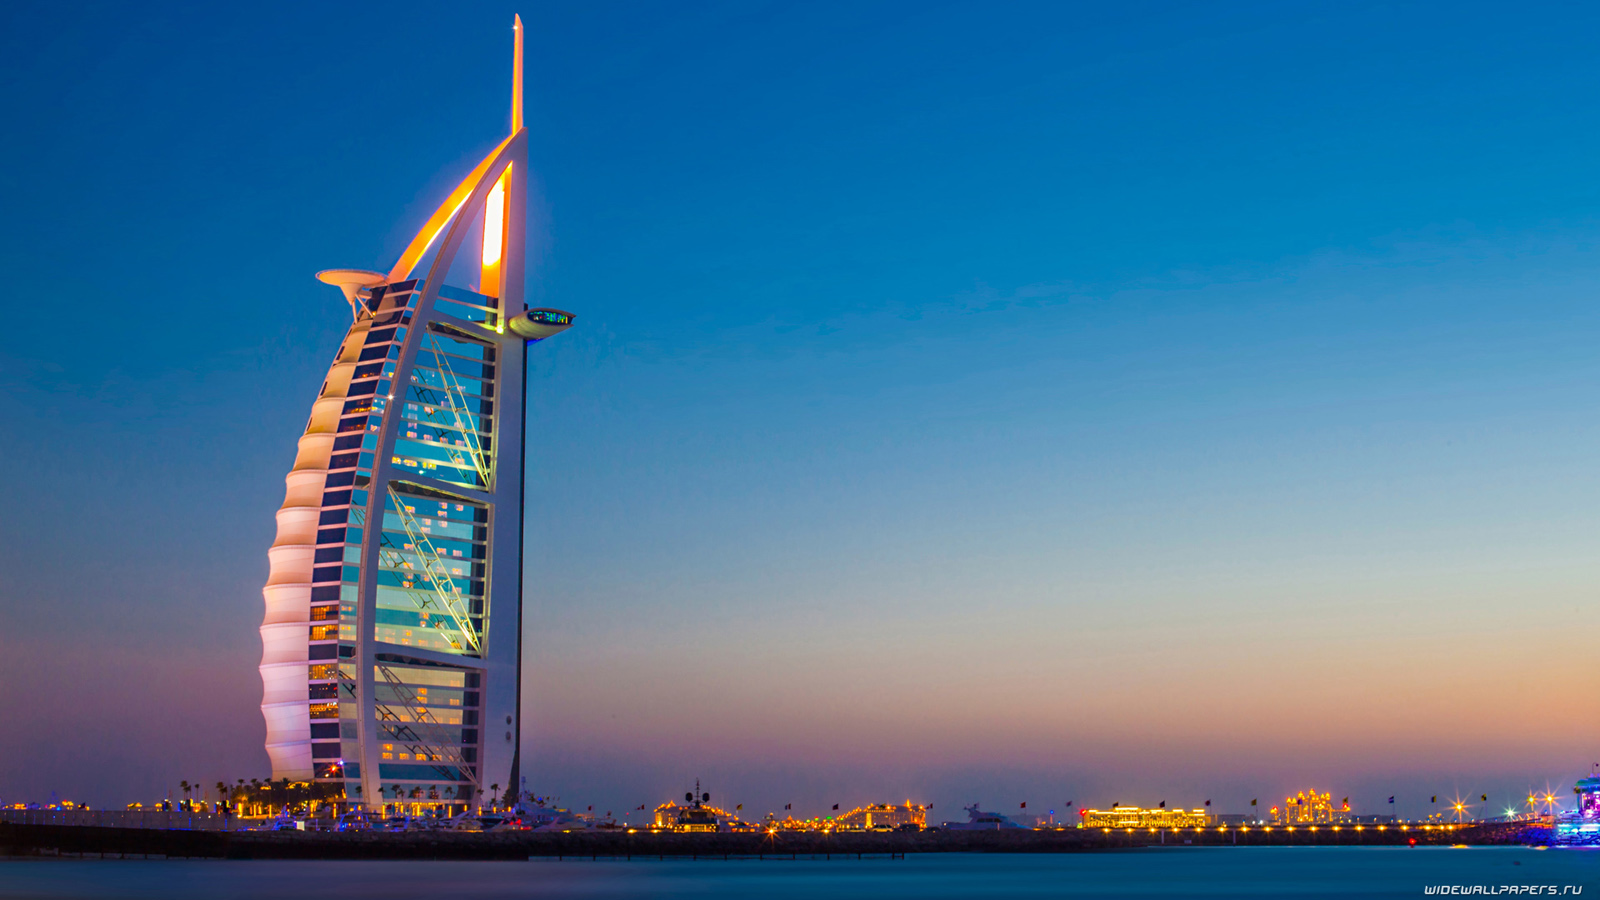 excursions aux Emirats Arabes Unis